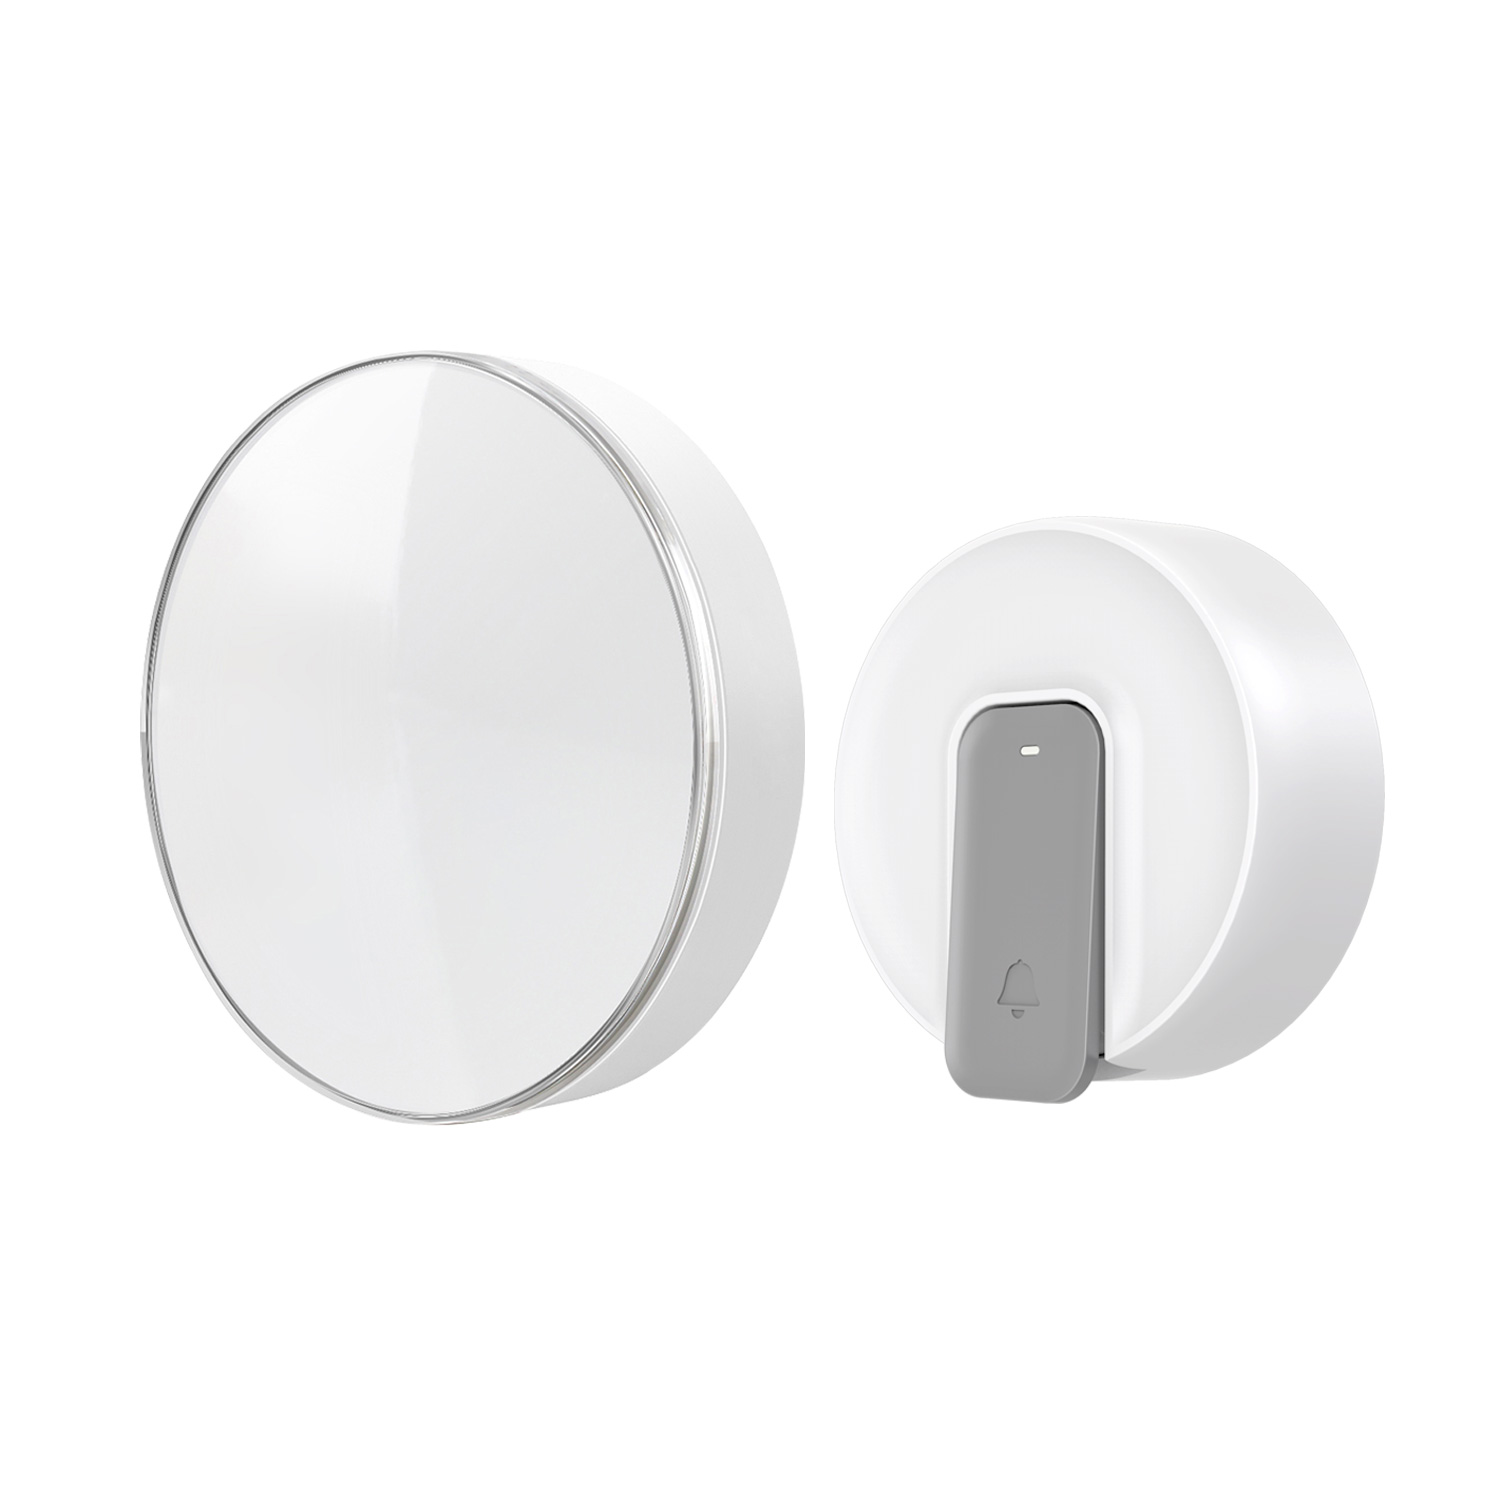 Kinetic Wireless Doorbell-No Battery Required